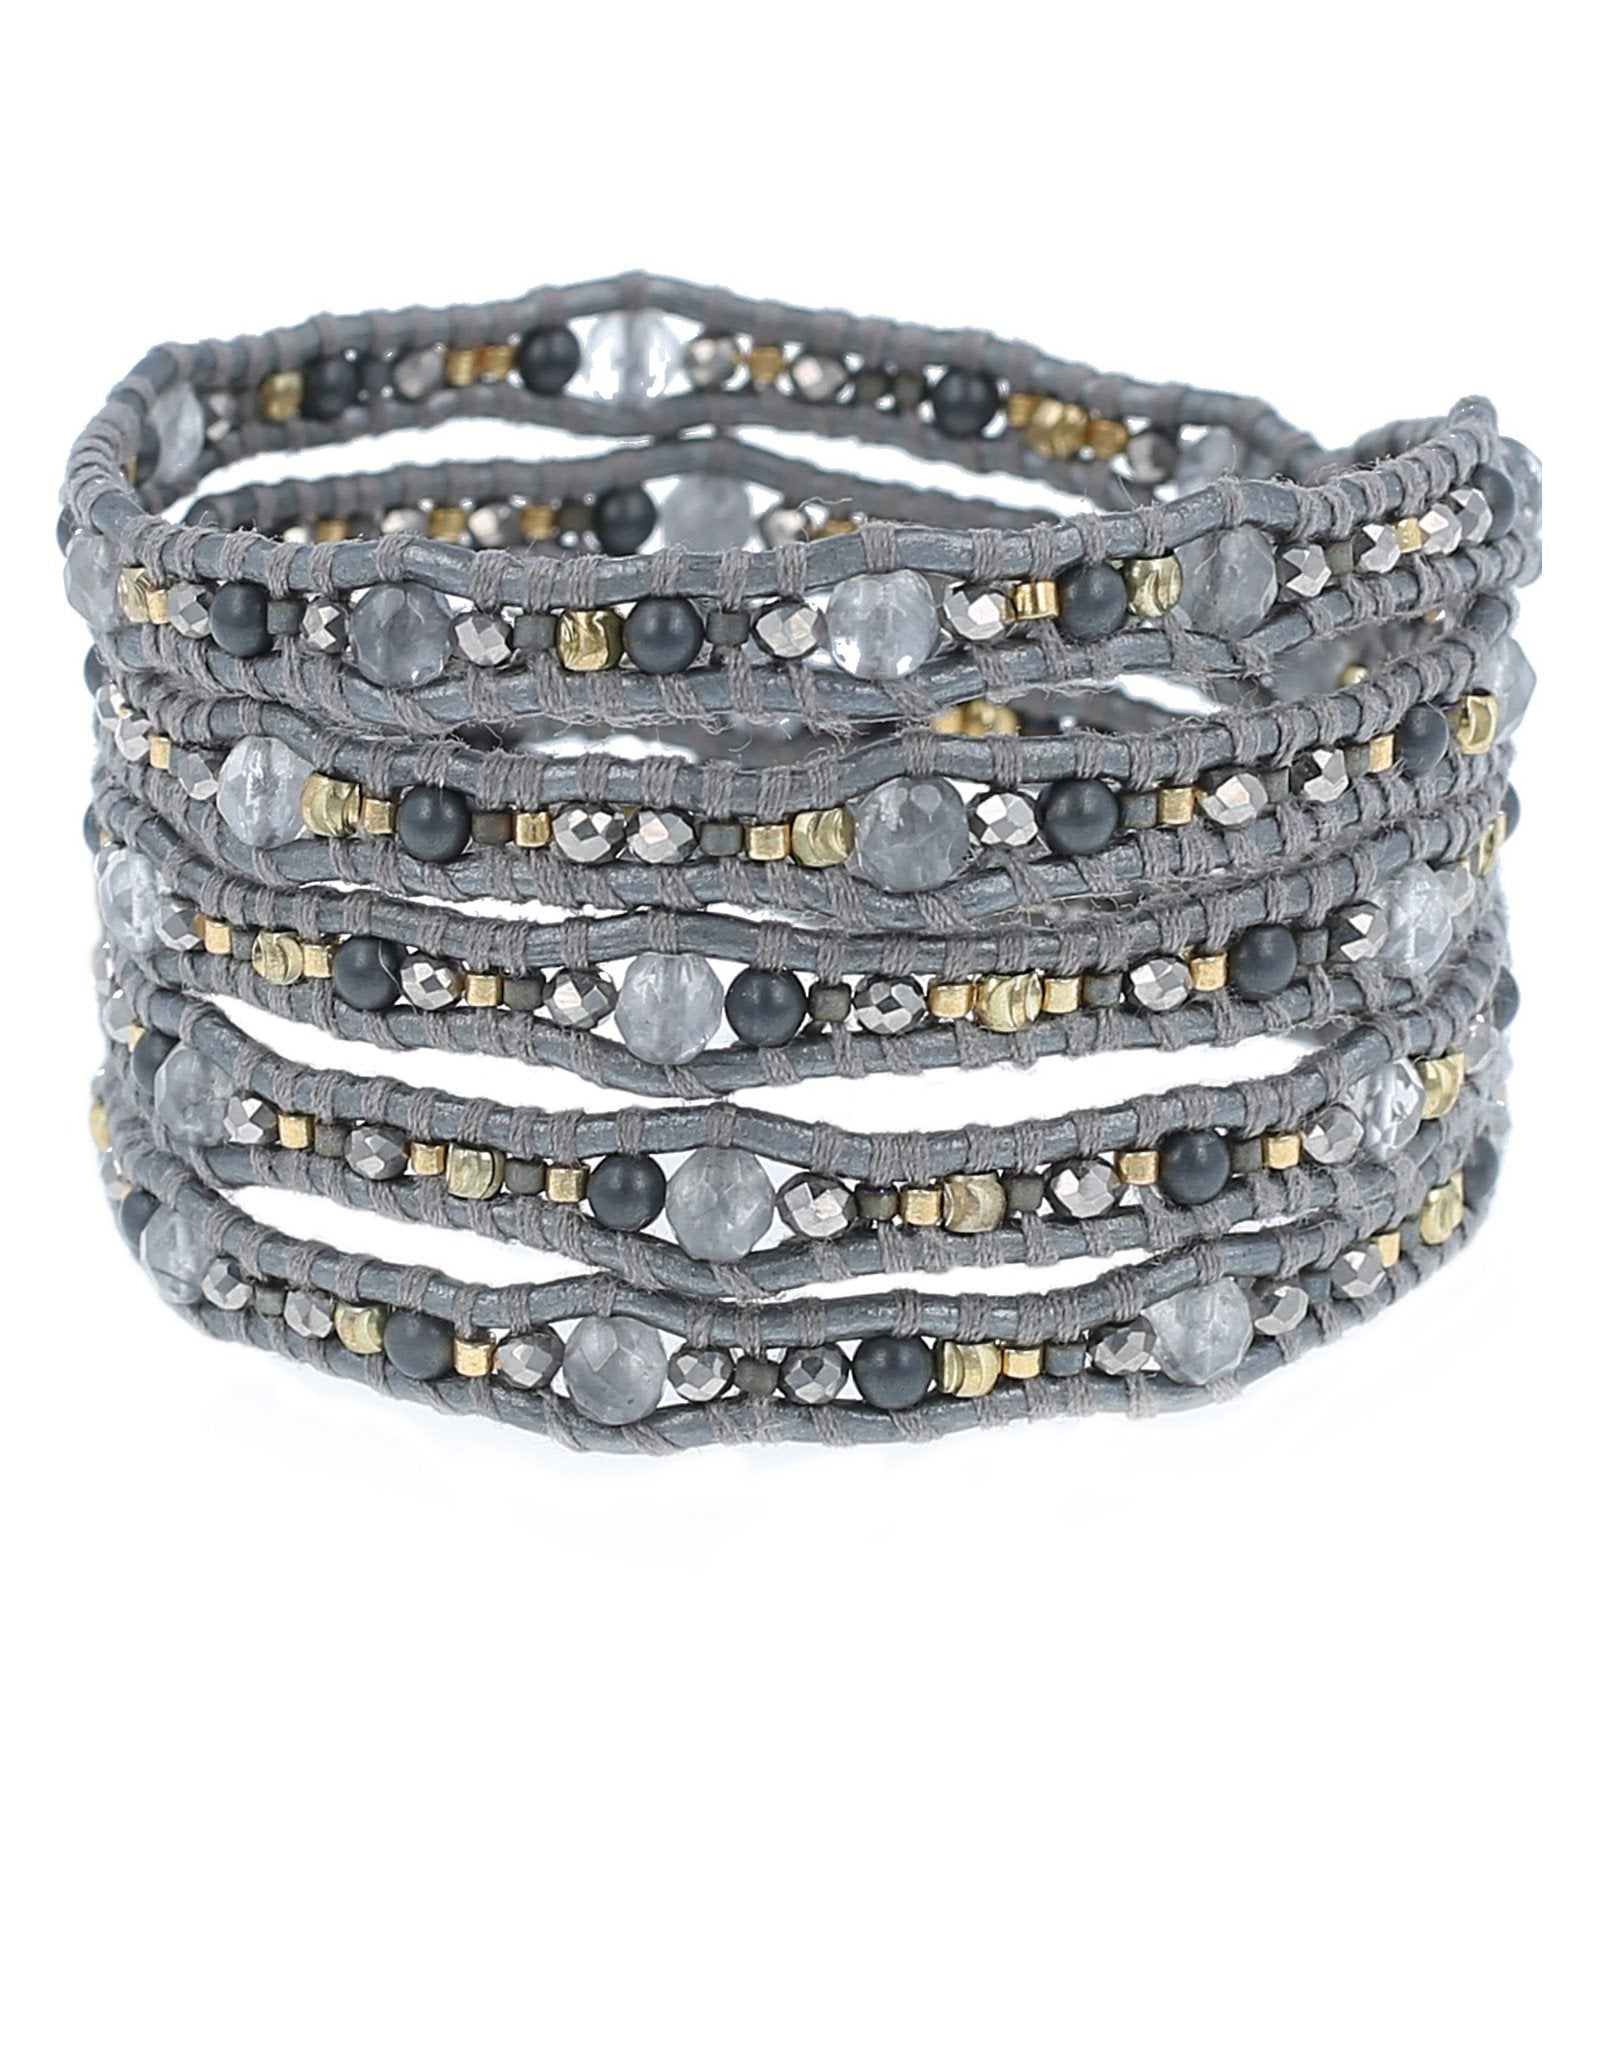 Women outfit in a bracelet rental from Chan Luu called Grey Mix Wrap Bracelet